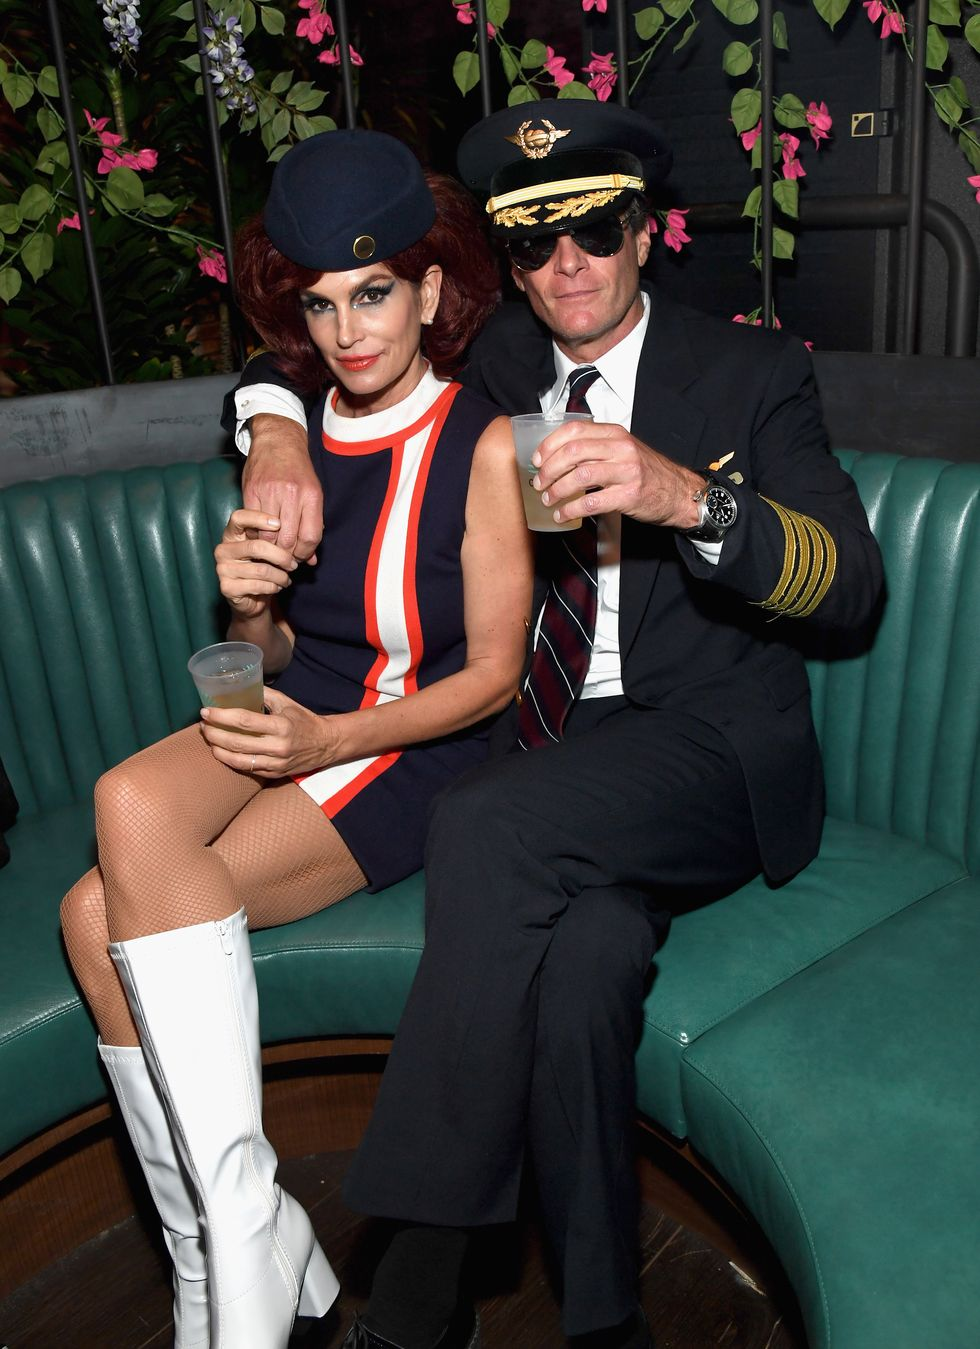 Cindy Crawford and Rande Gerber - Flight Attendant and Pilot Cozied up at one of two Casamigos Halloween parties in 2018, Cindy Crawford made an old-school flight attendant's uniform look überstylish, while her hubs Rande Gerber (a Casamigos cofounder) rocked a pilot outfit. (P.S. George Clooney joined in as a pilot, too.